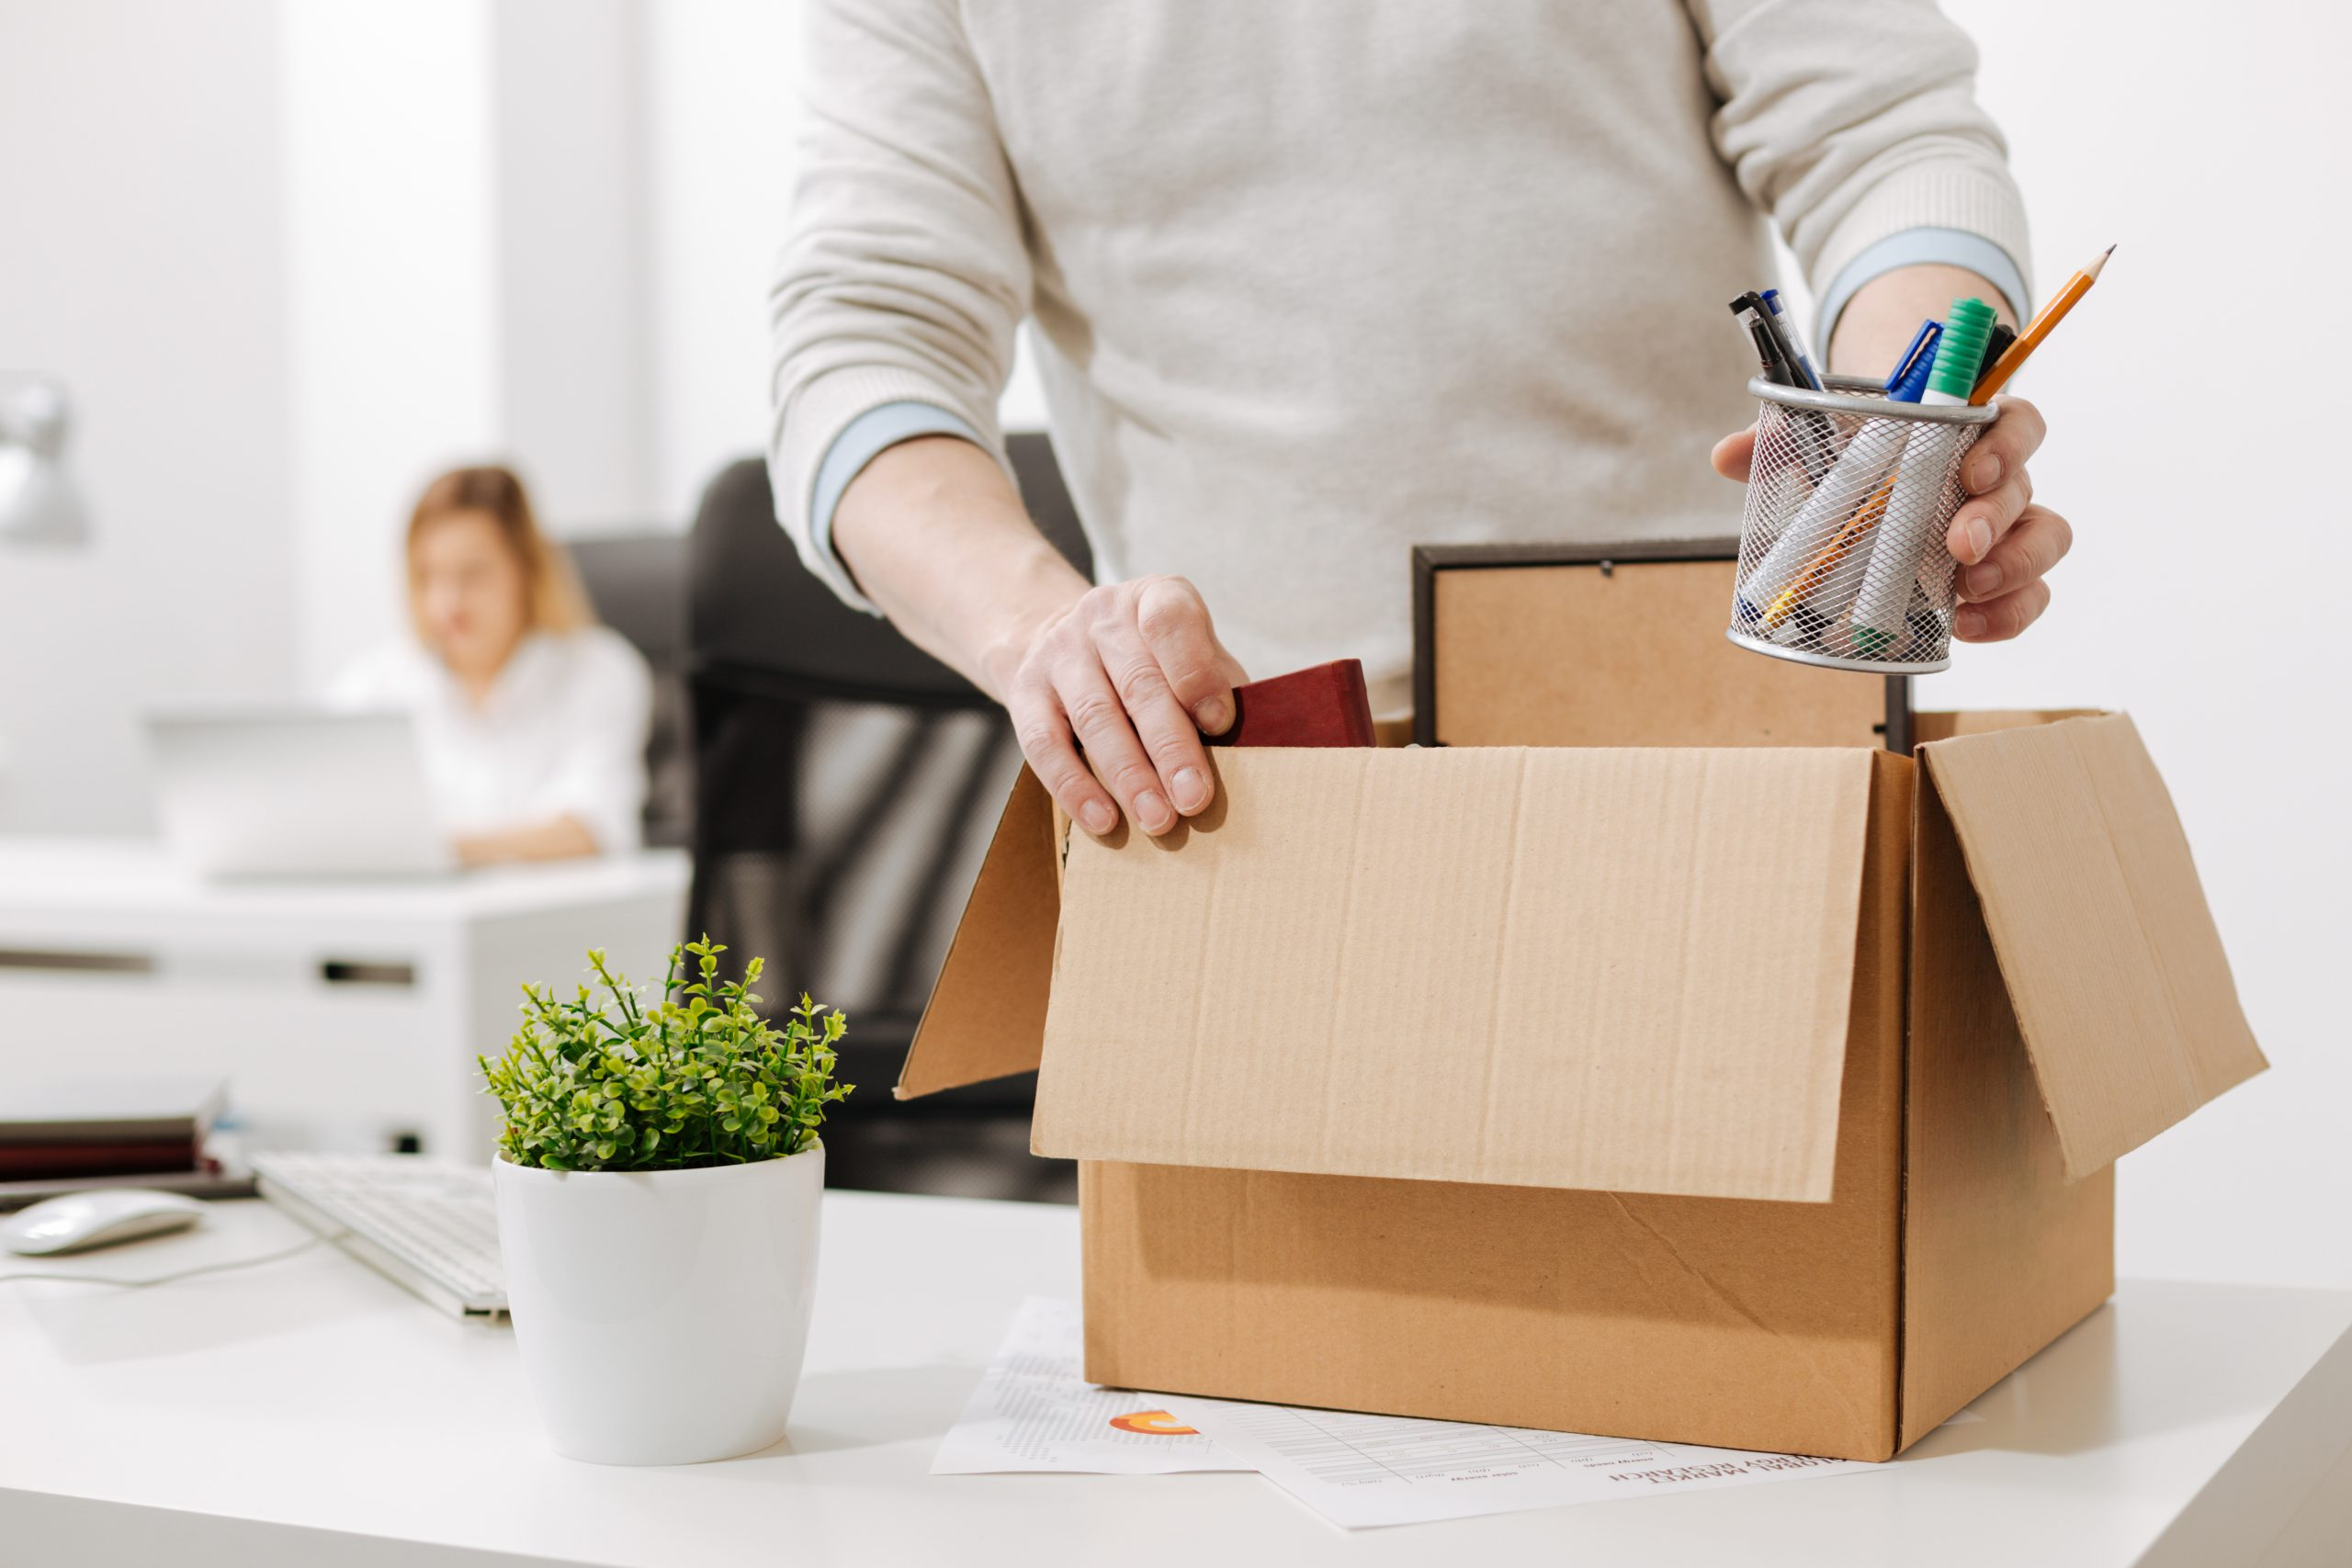 5 steps you can take if you are an expat in Europe and have been made redundant